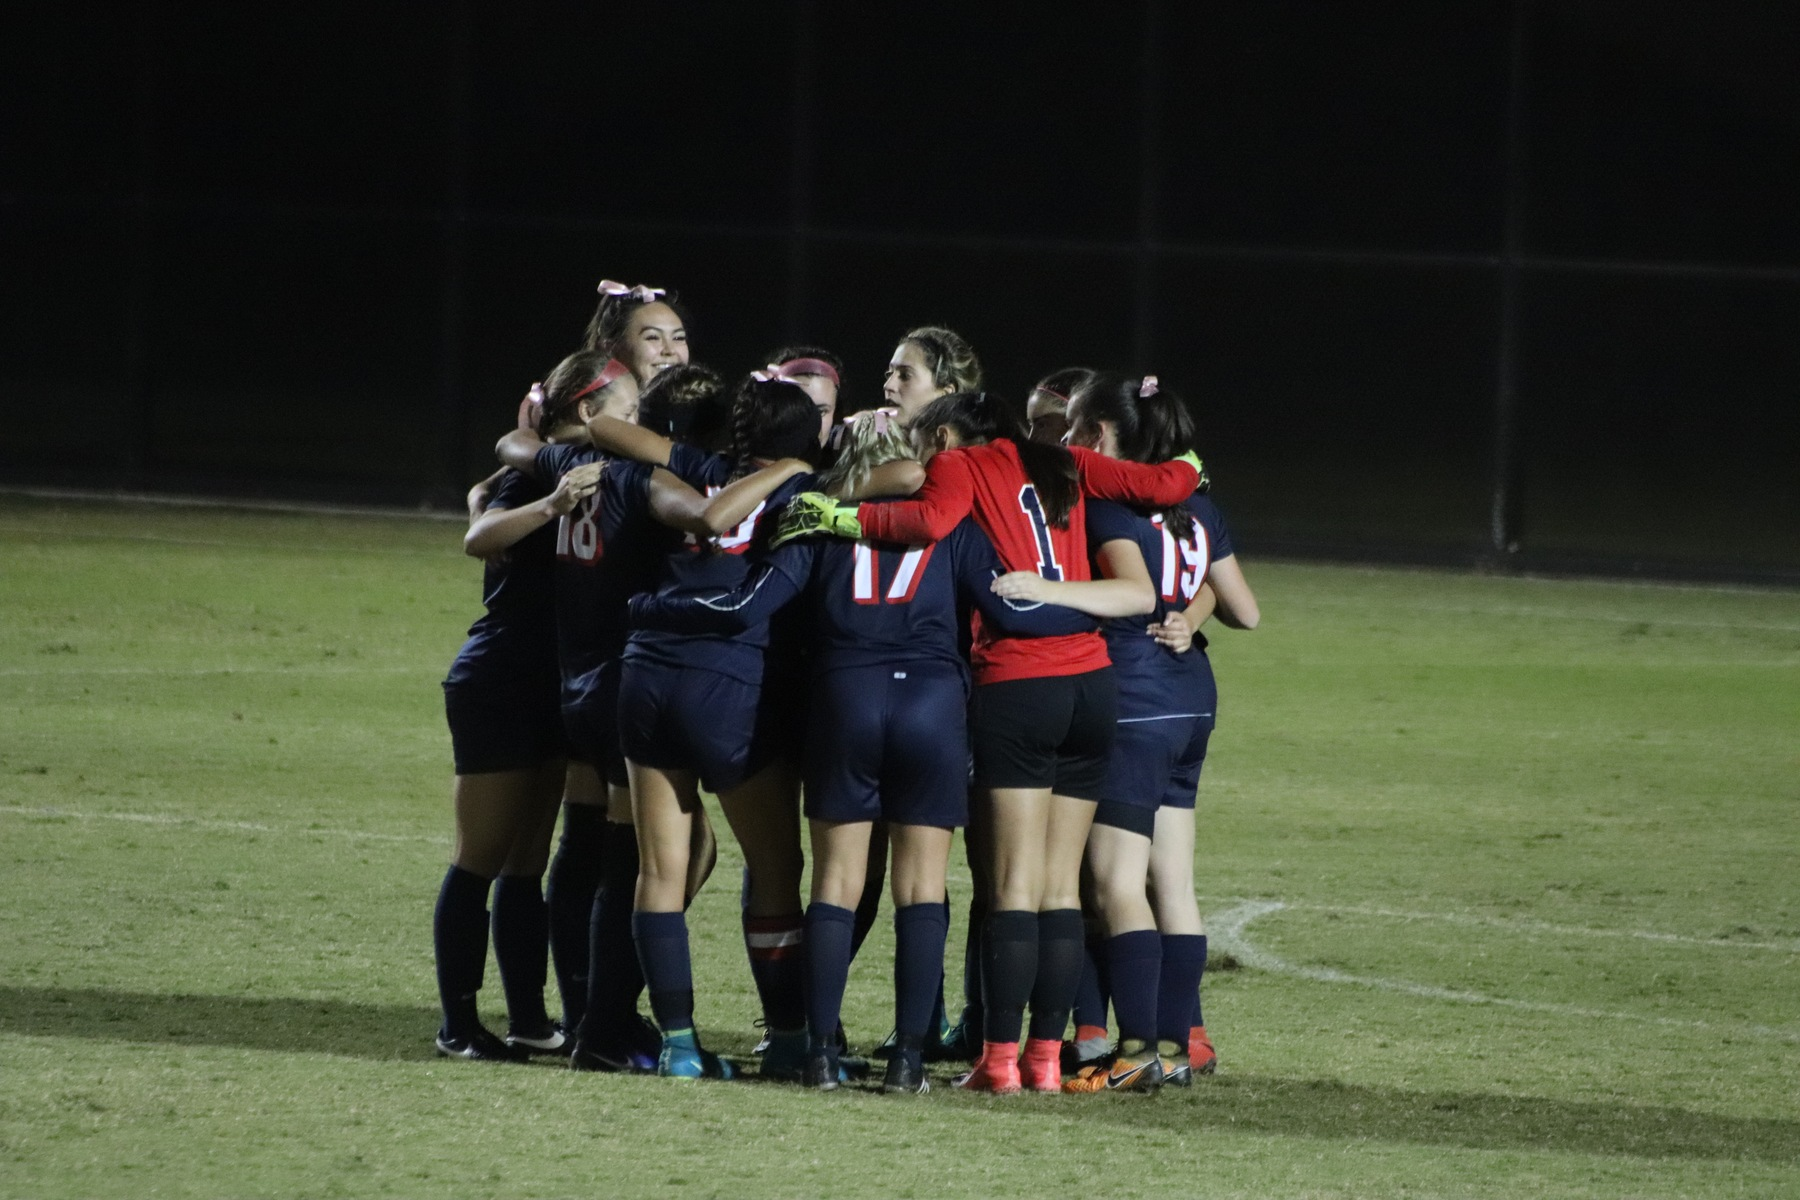 Women's Soccer team in a huddle